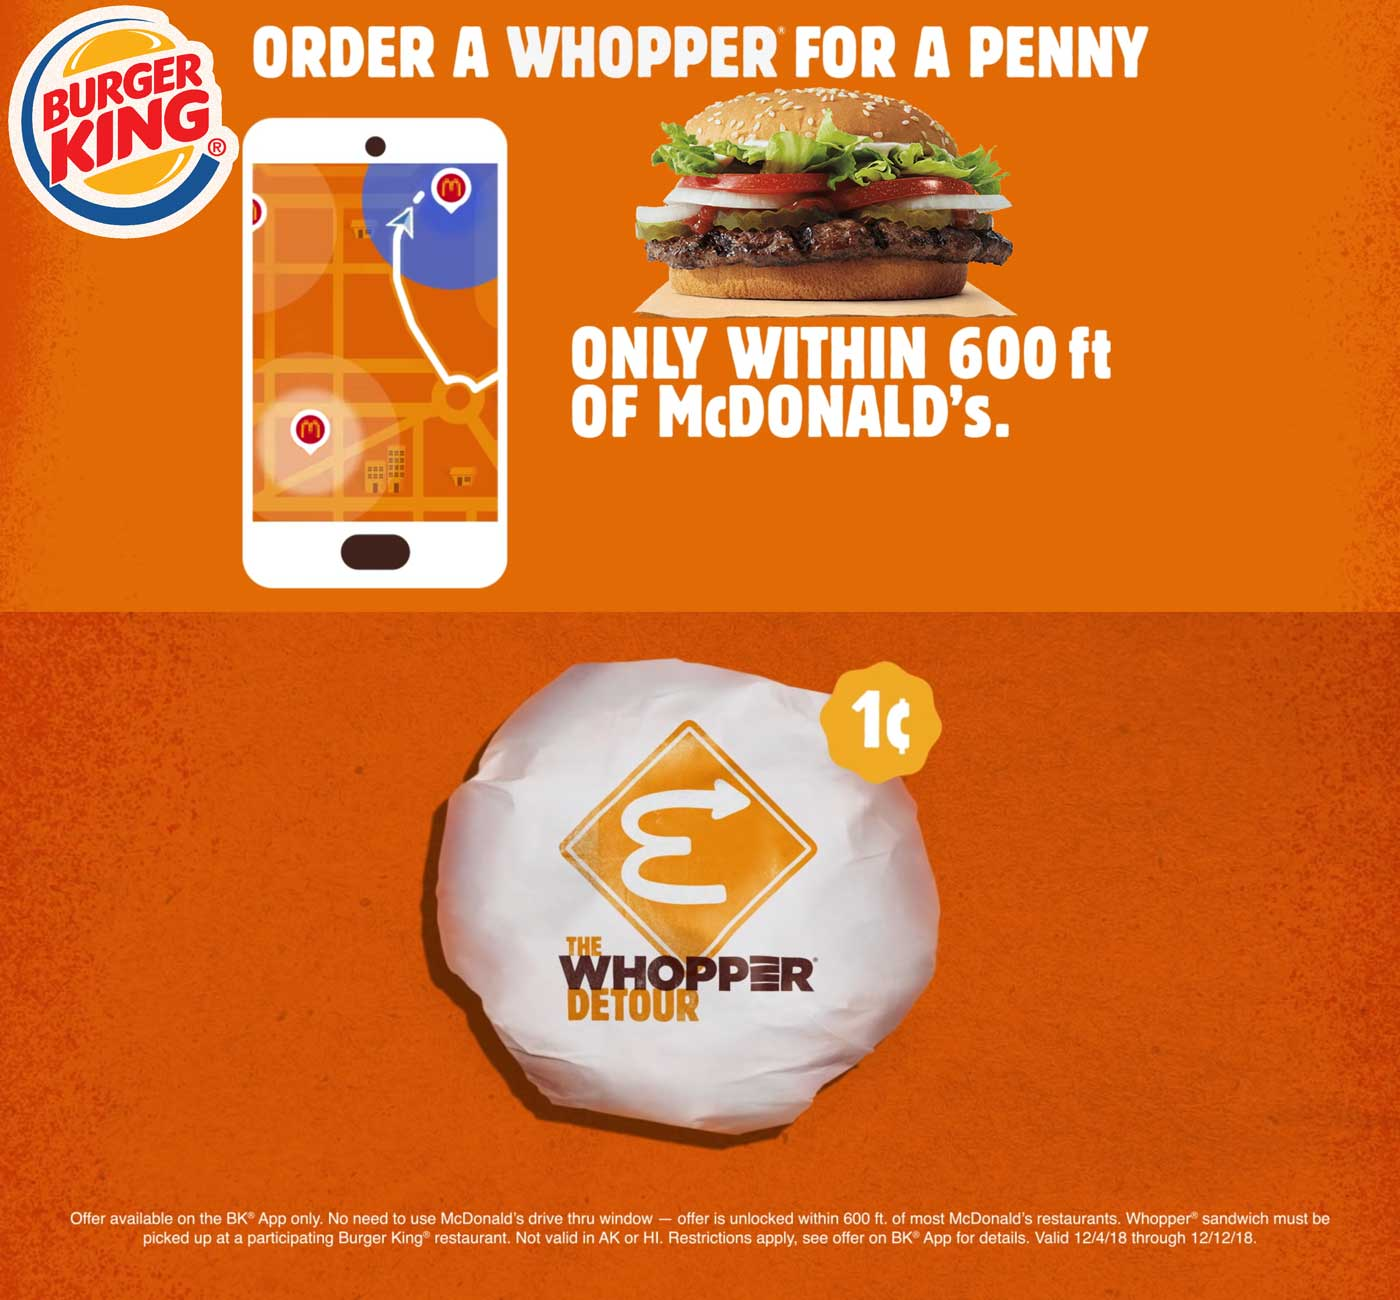 Burger King Coupon August 2019 Whopper for a penny via Burger King app